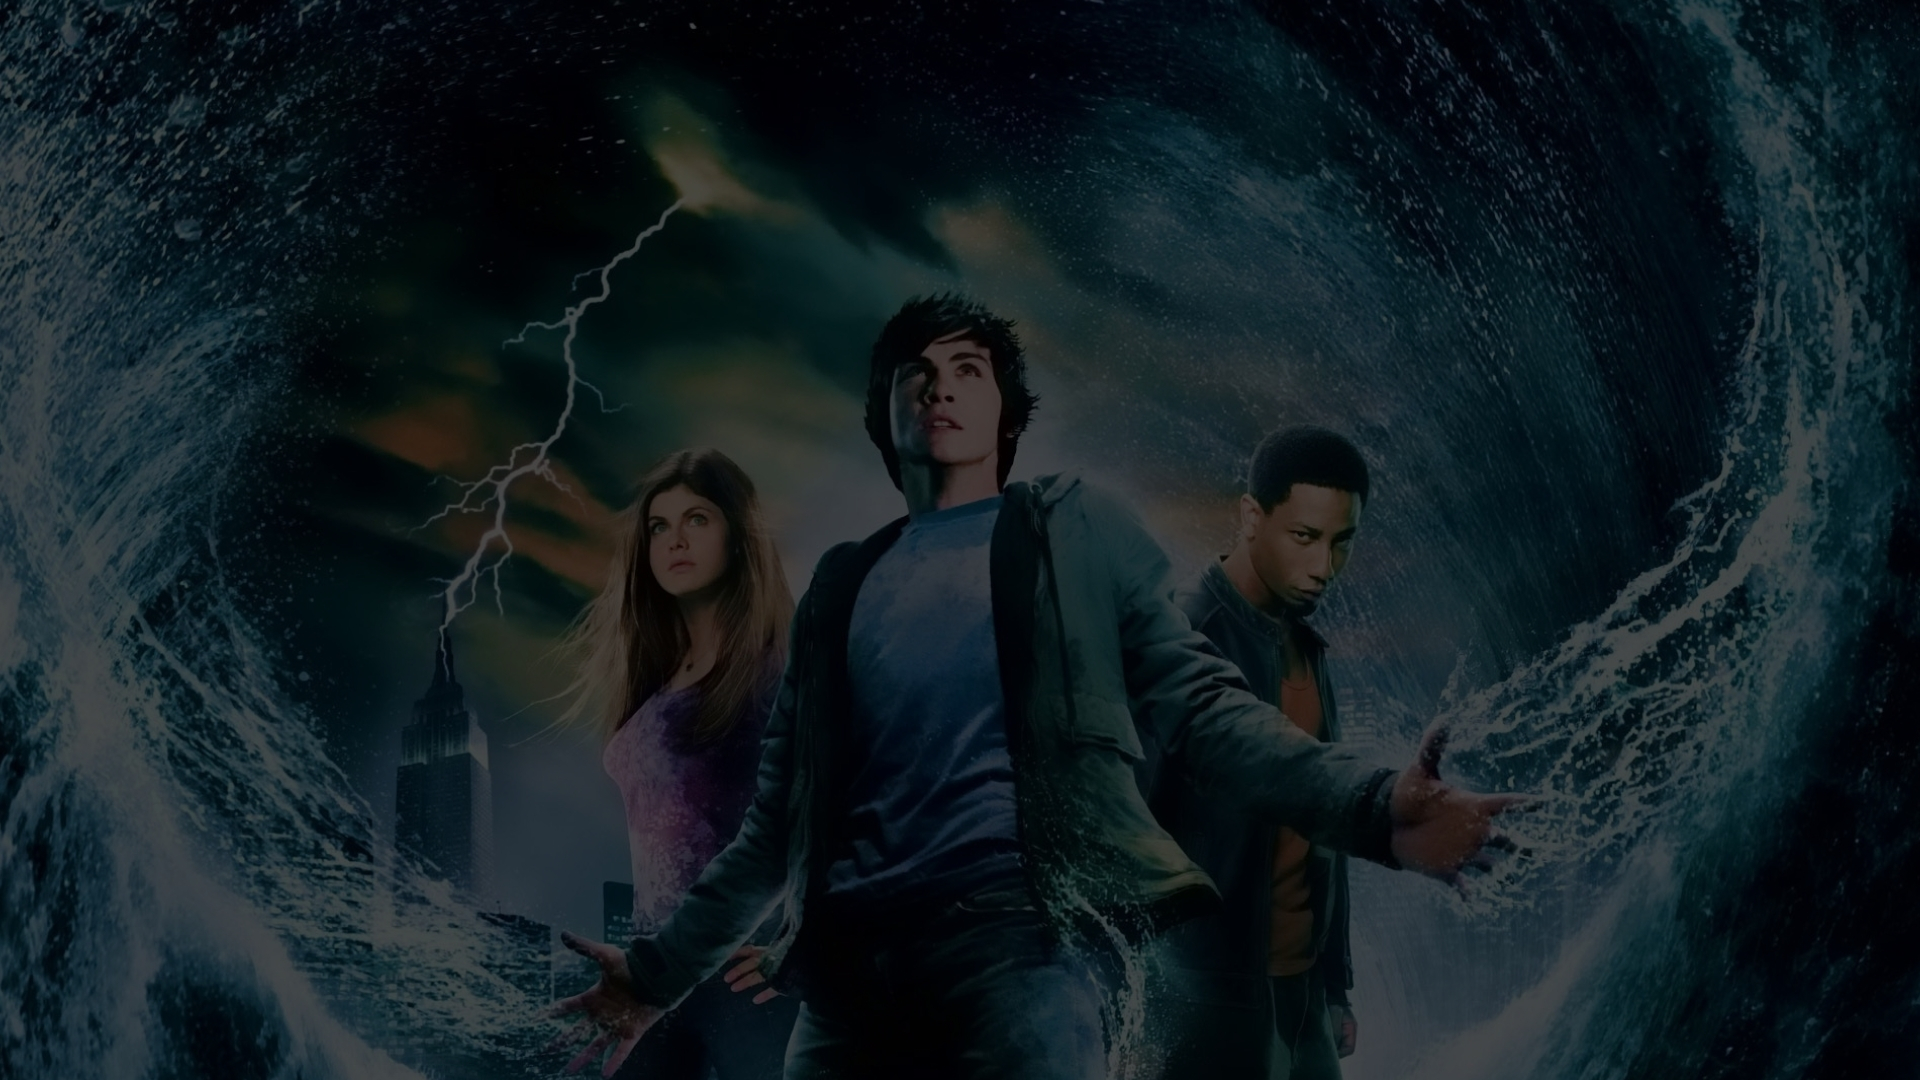 Percy Jackson The Movie | Most Entertained Character